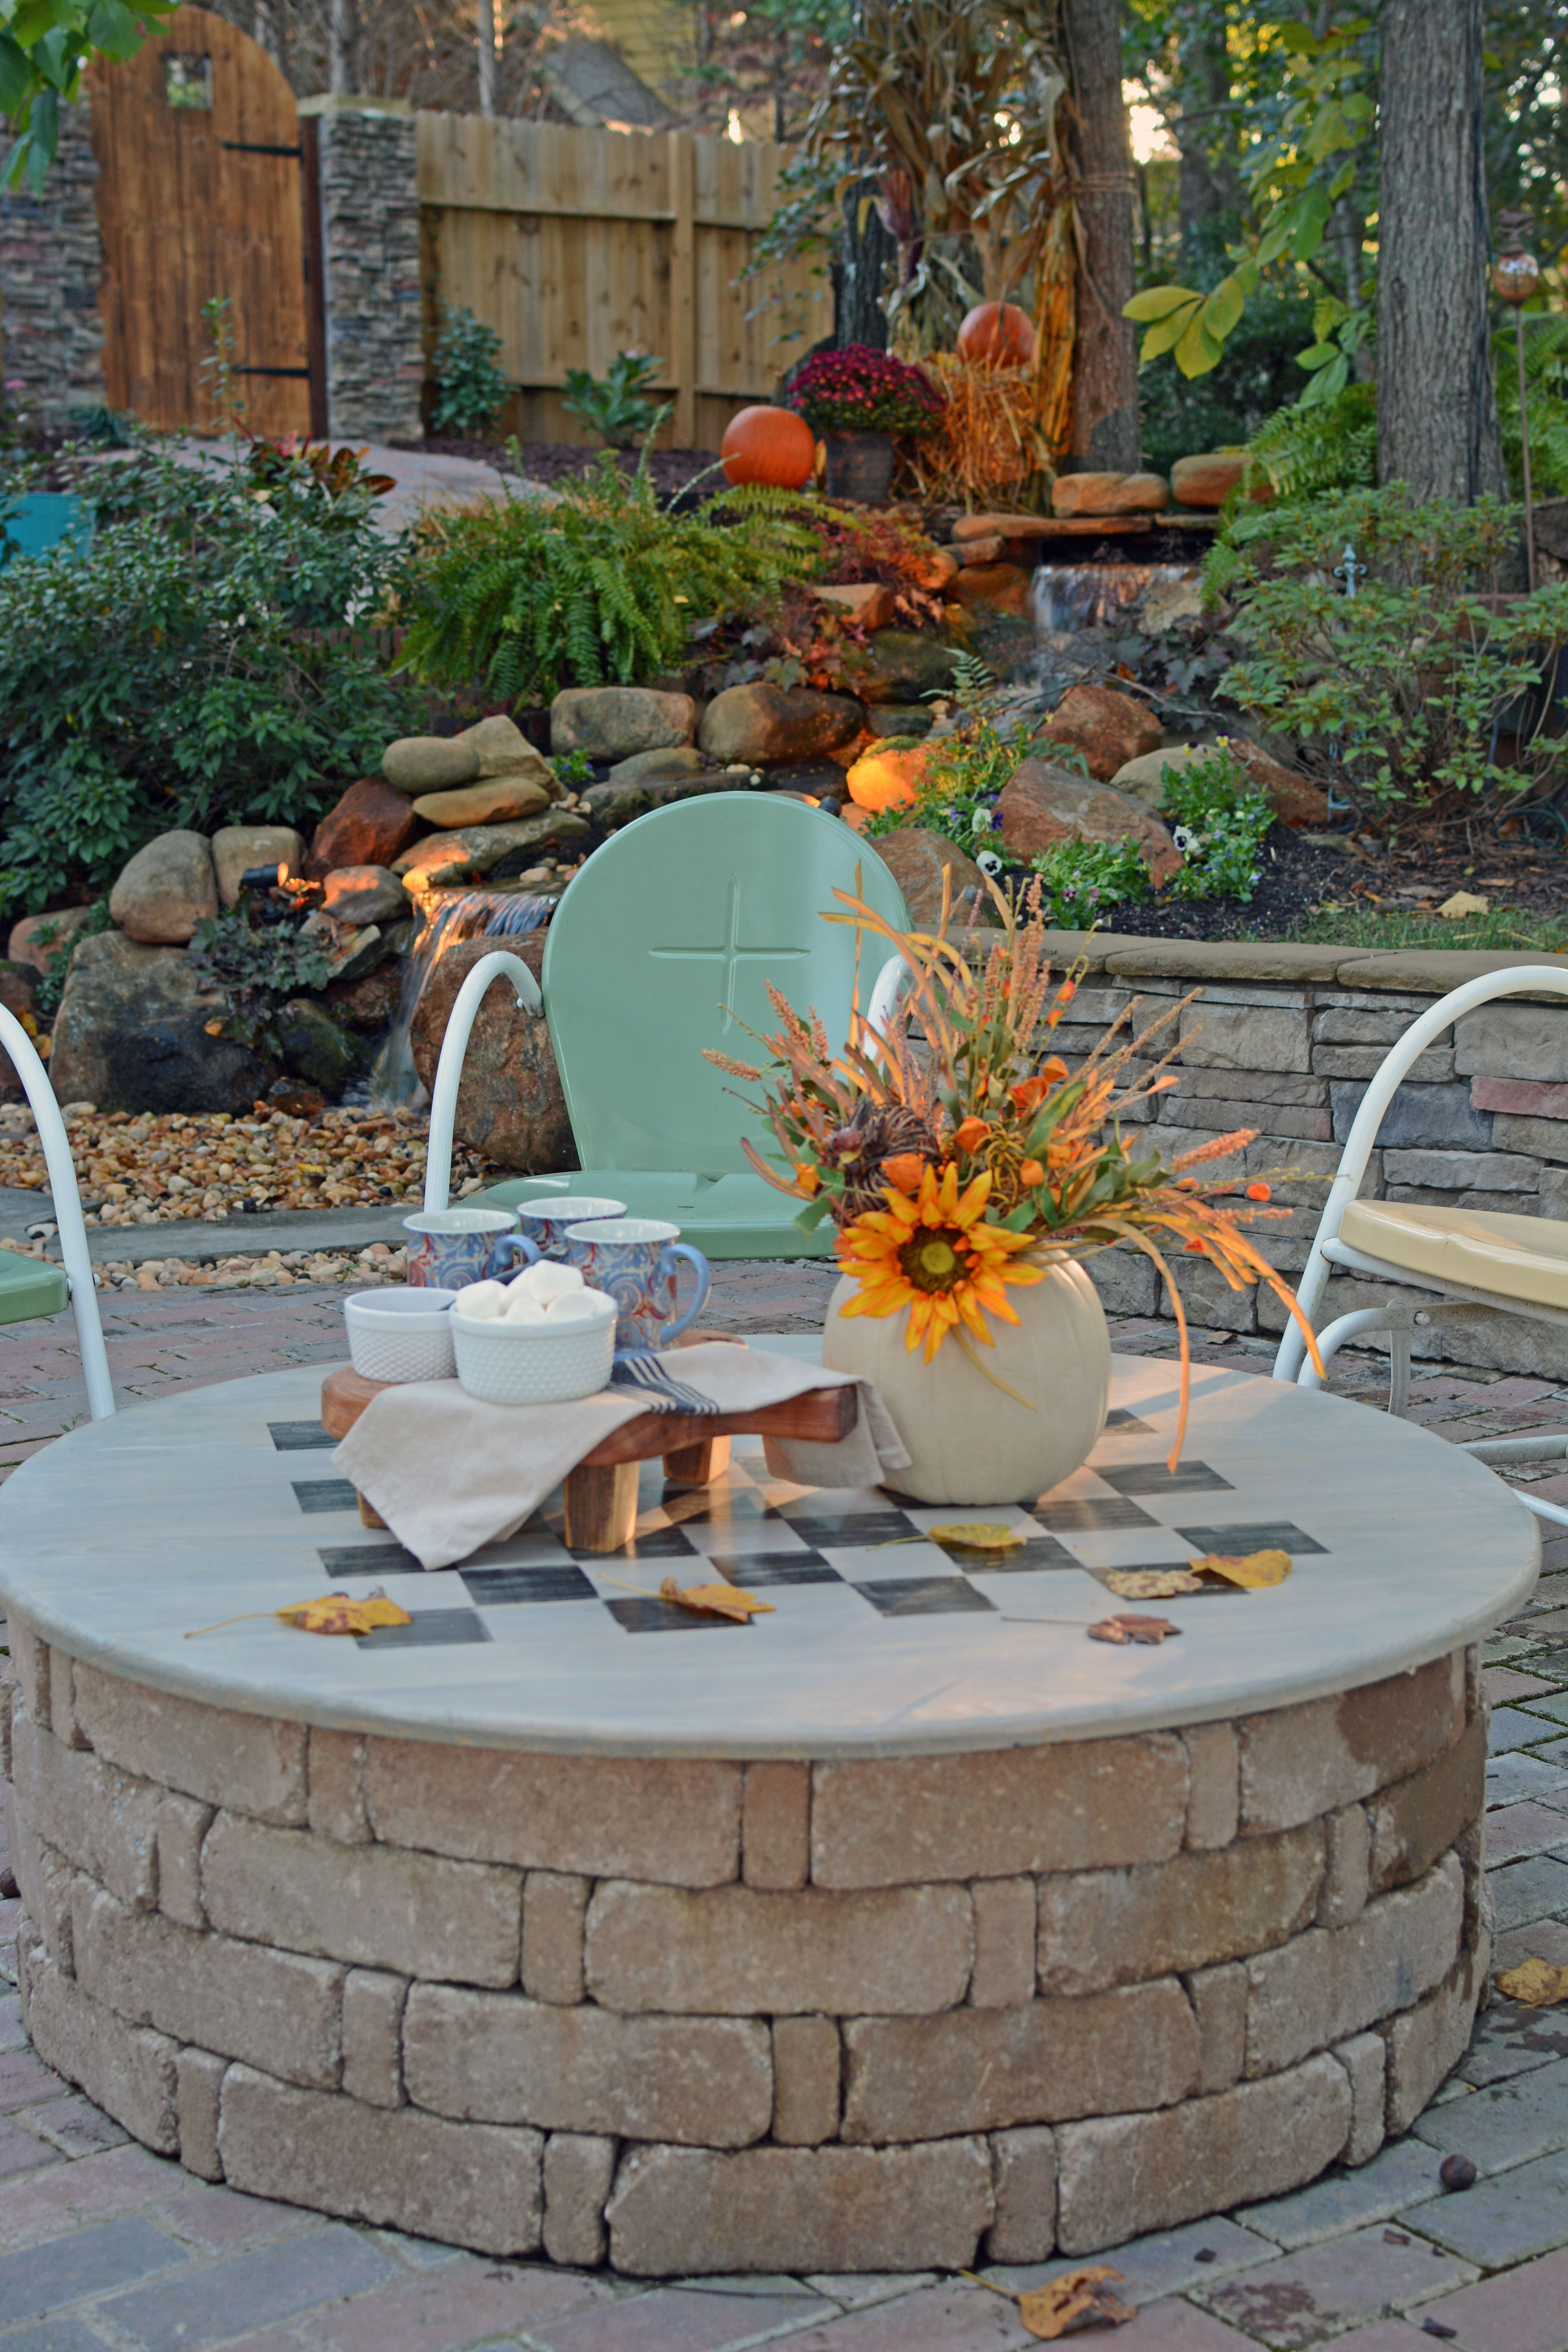 Diy Fire Pit Cover Game Table Backyard Fire Outdoor Fire Pit